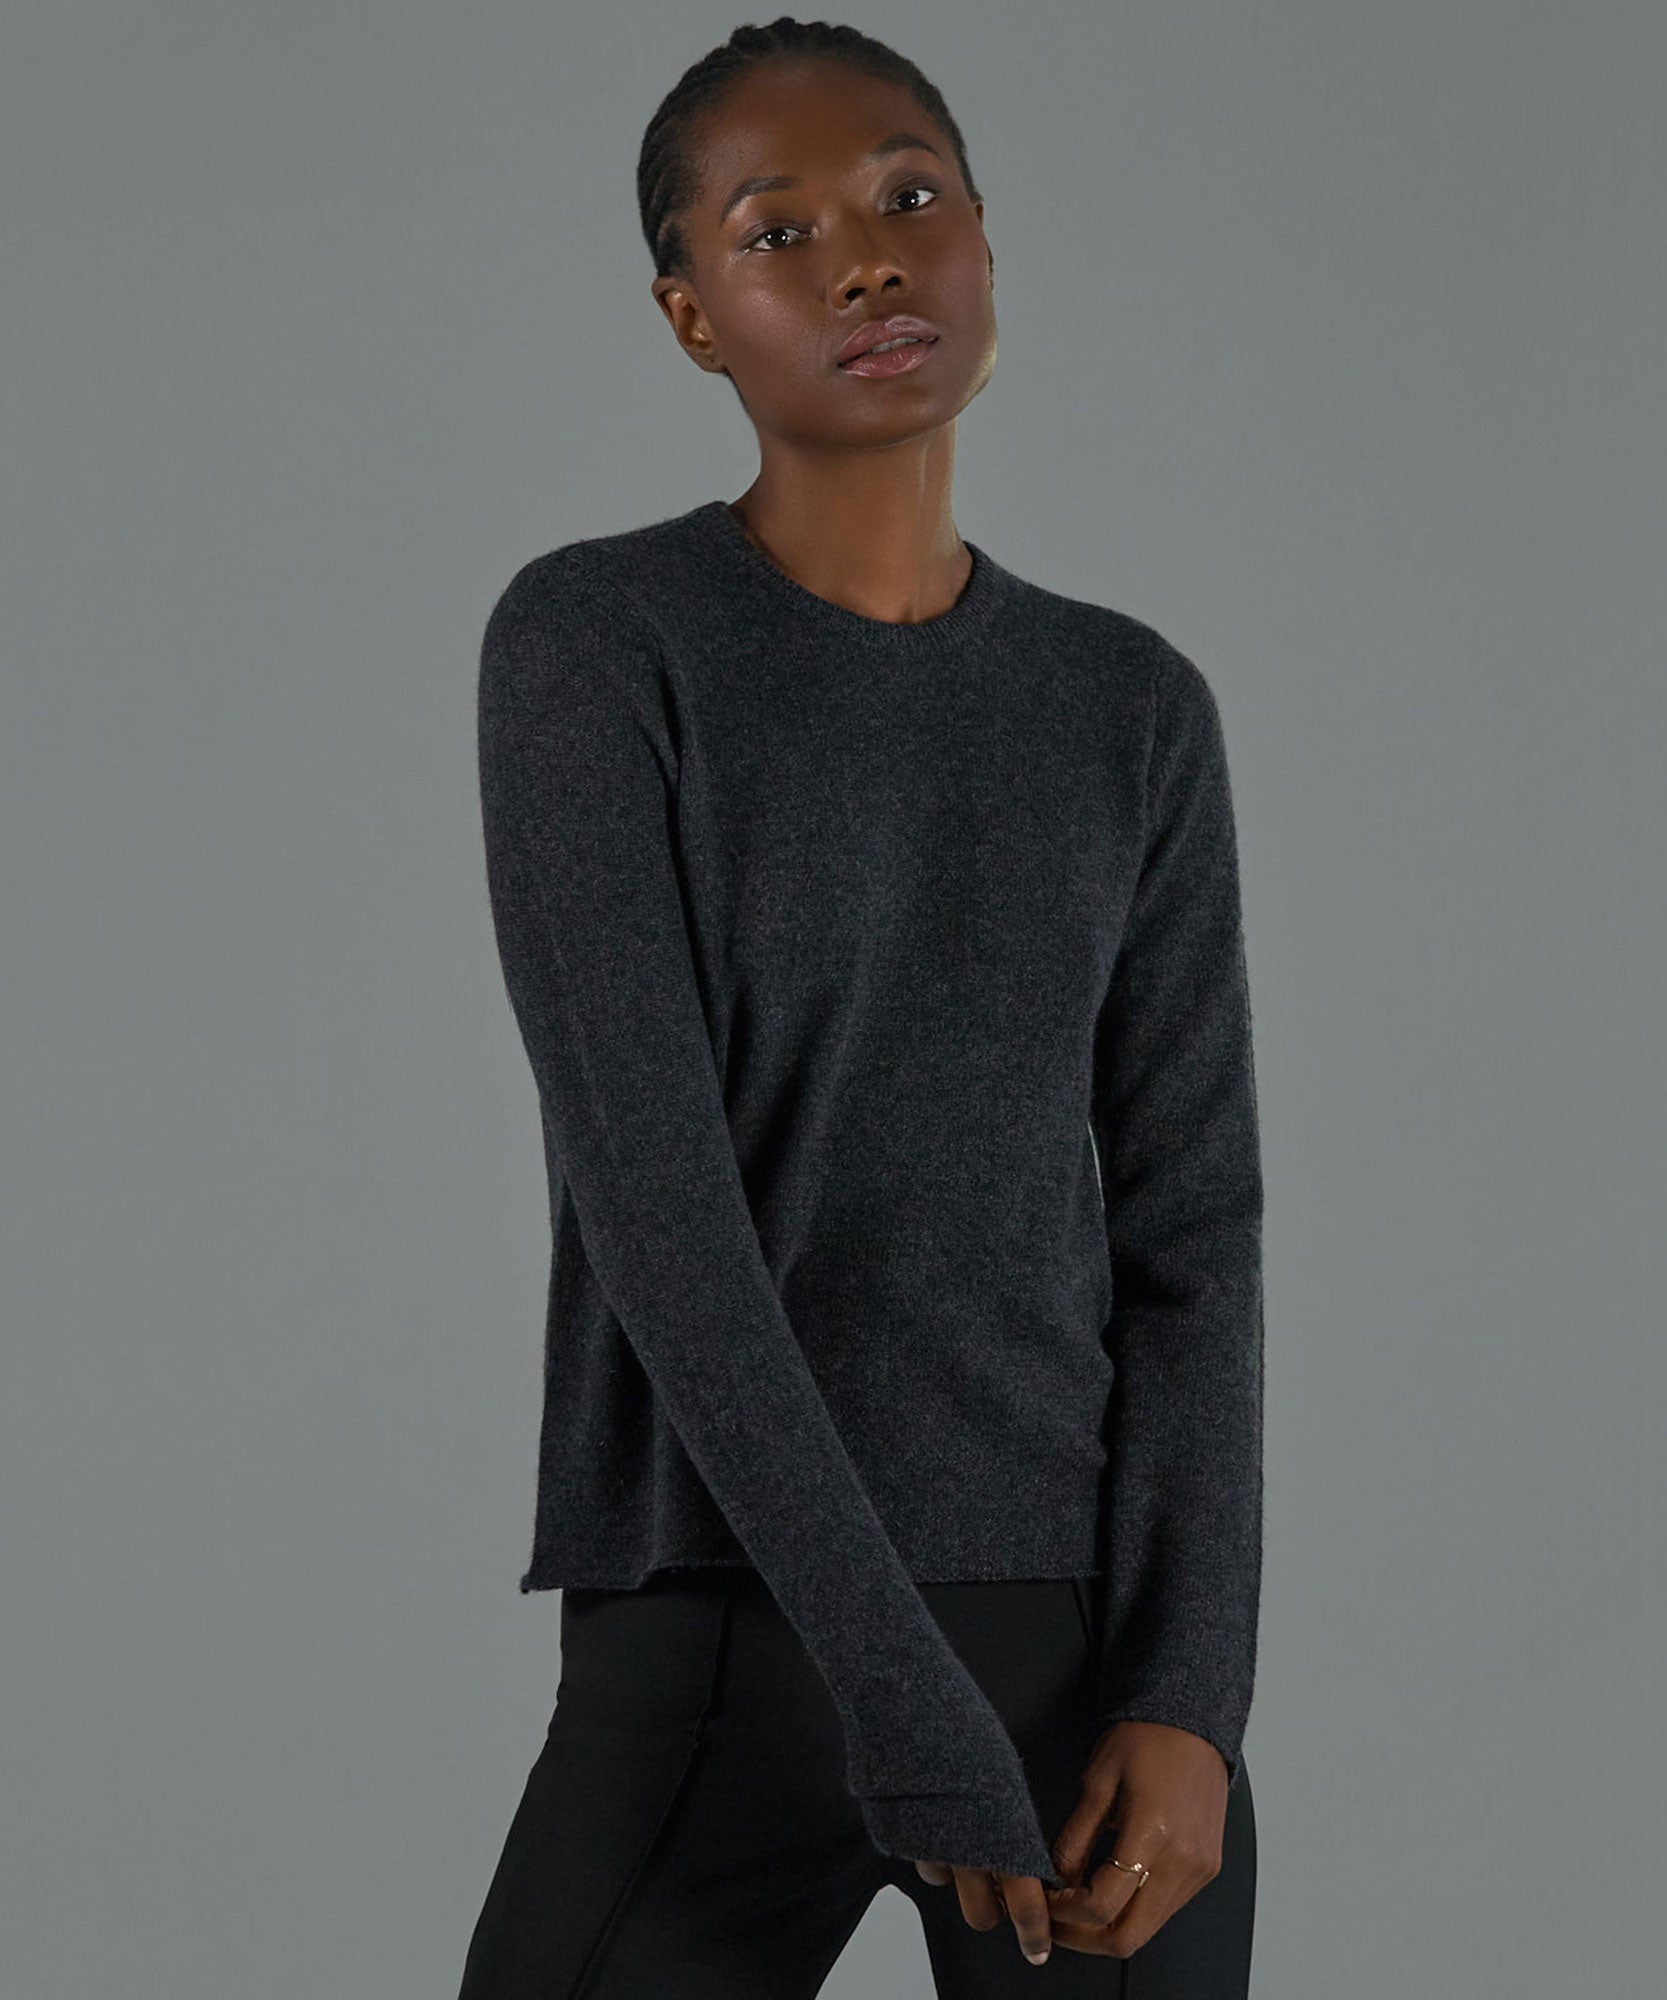 Charcoal Cashmere Crew Neck Sweater - Women's Luxe Sweater by ATM Anthony Thomas Melillo